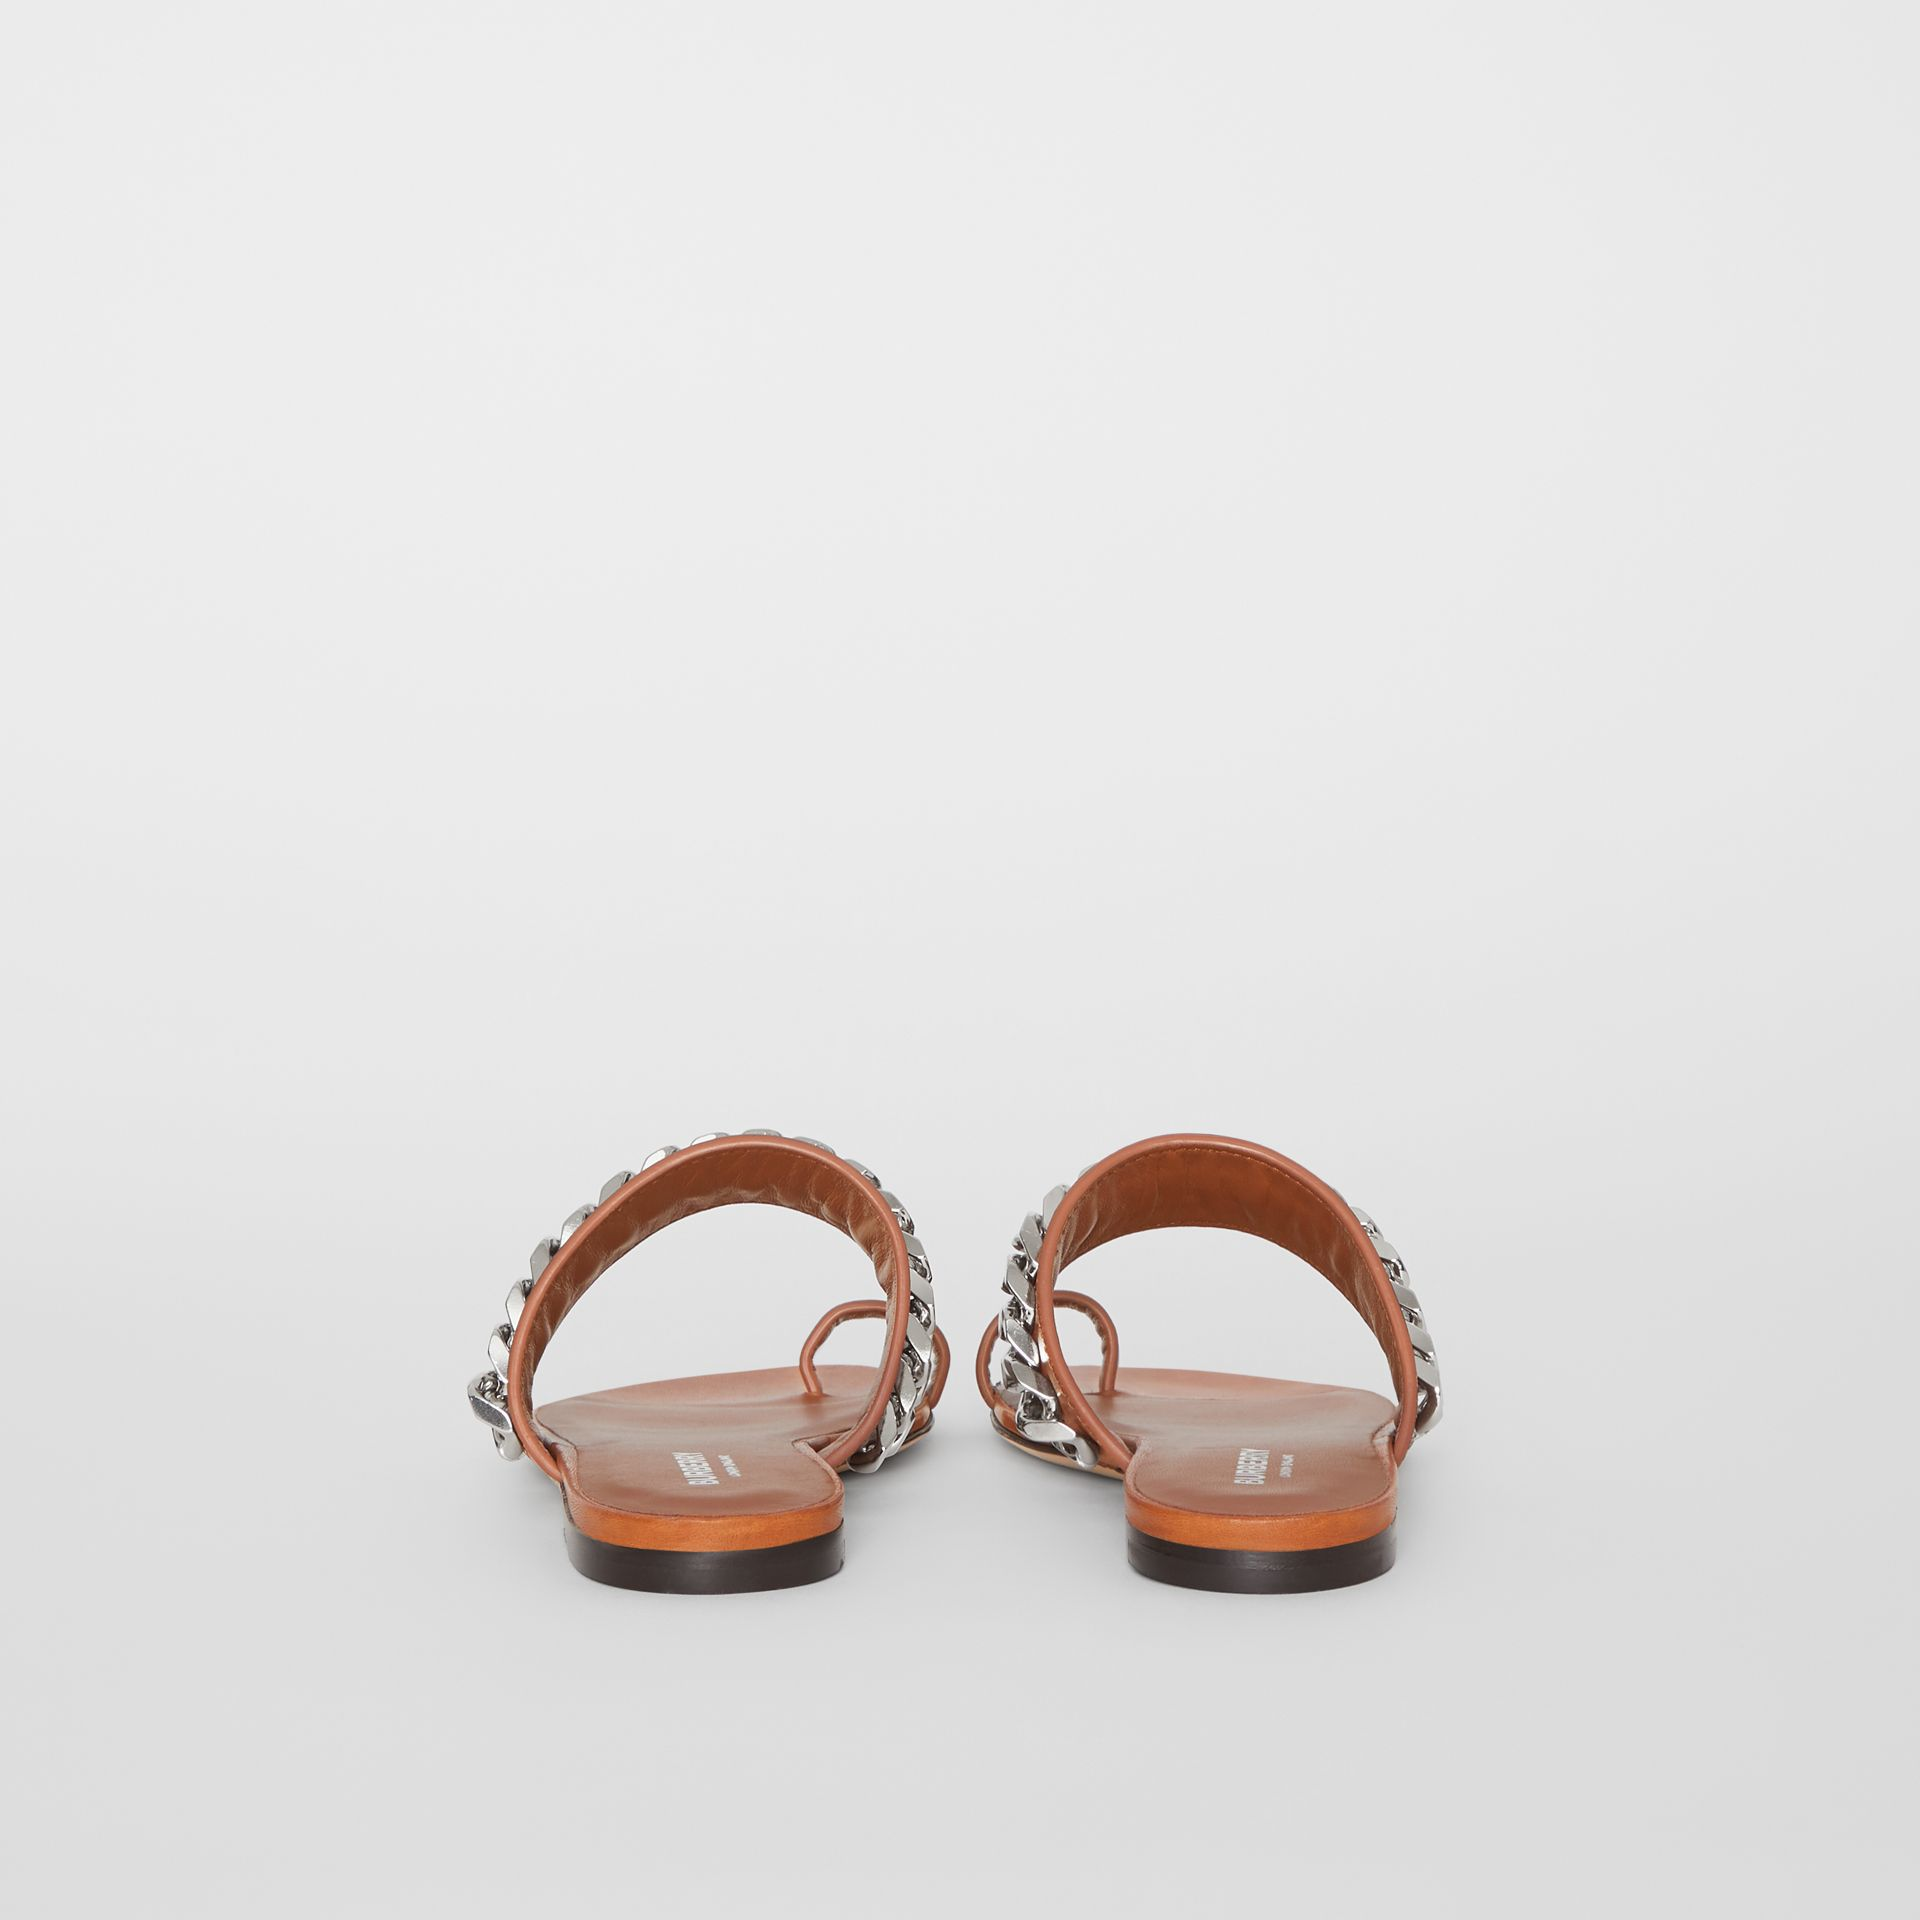 Chain Detail Leather Sandals in Amber - Women | Burberry Singapore - gallery image 4